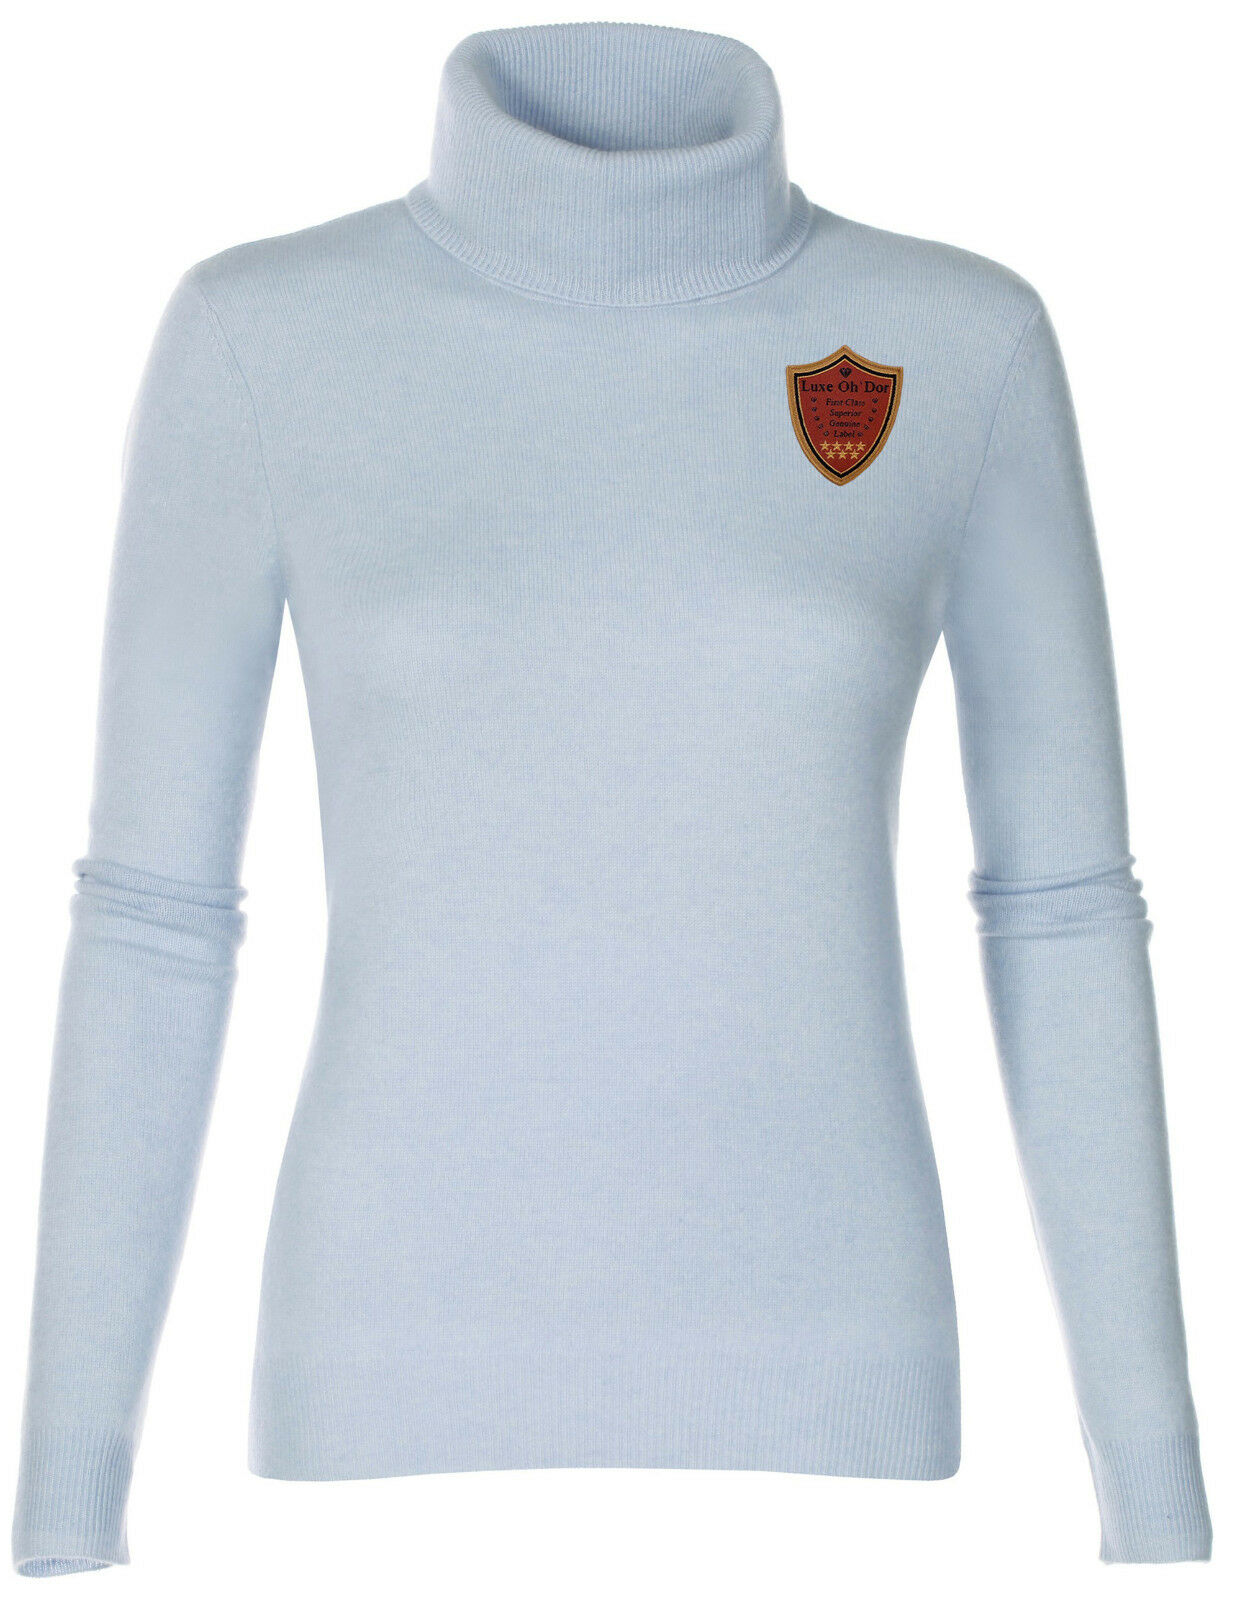 Luxe Oh ` Dor 100% Cashmere Pullover Pullover Pullover Preppy Catherine Nero 34 - 52 Xs   S-Xl   afee08